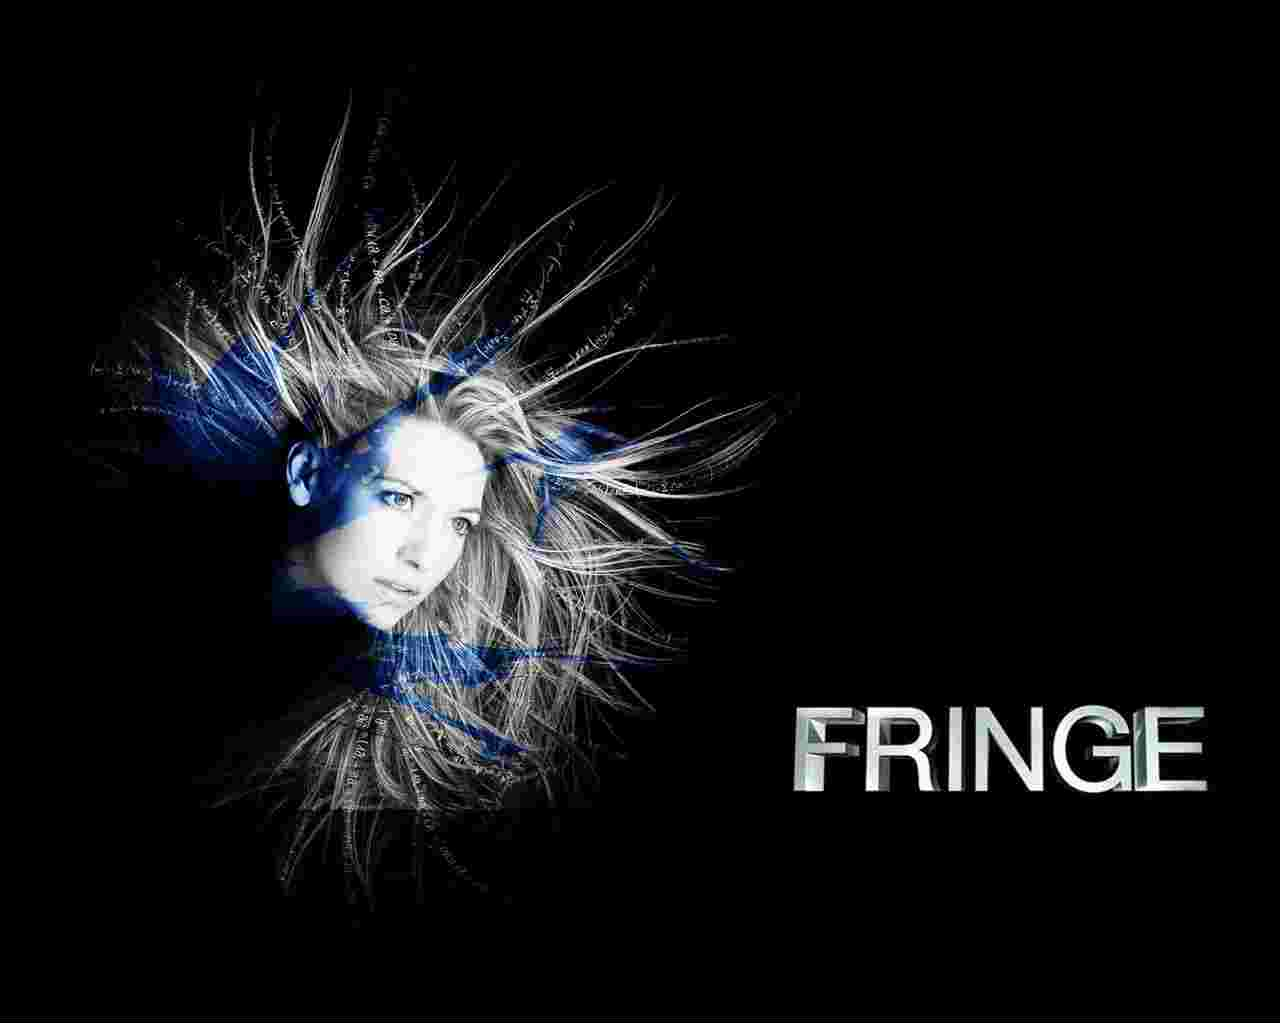 Fringe Wallpaper 015613 wallpaper   Fringe   Movies   Wallpaper 1280x1024